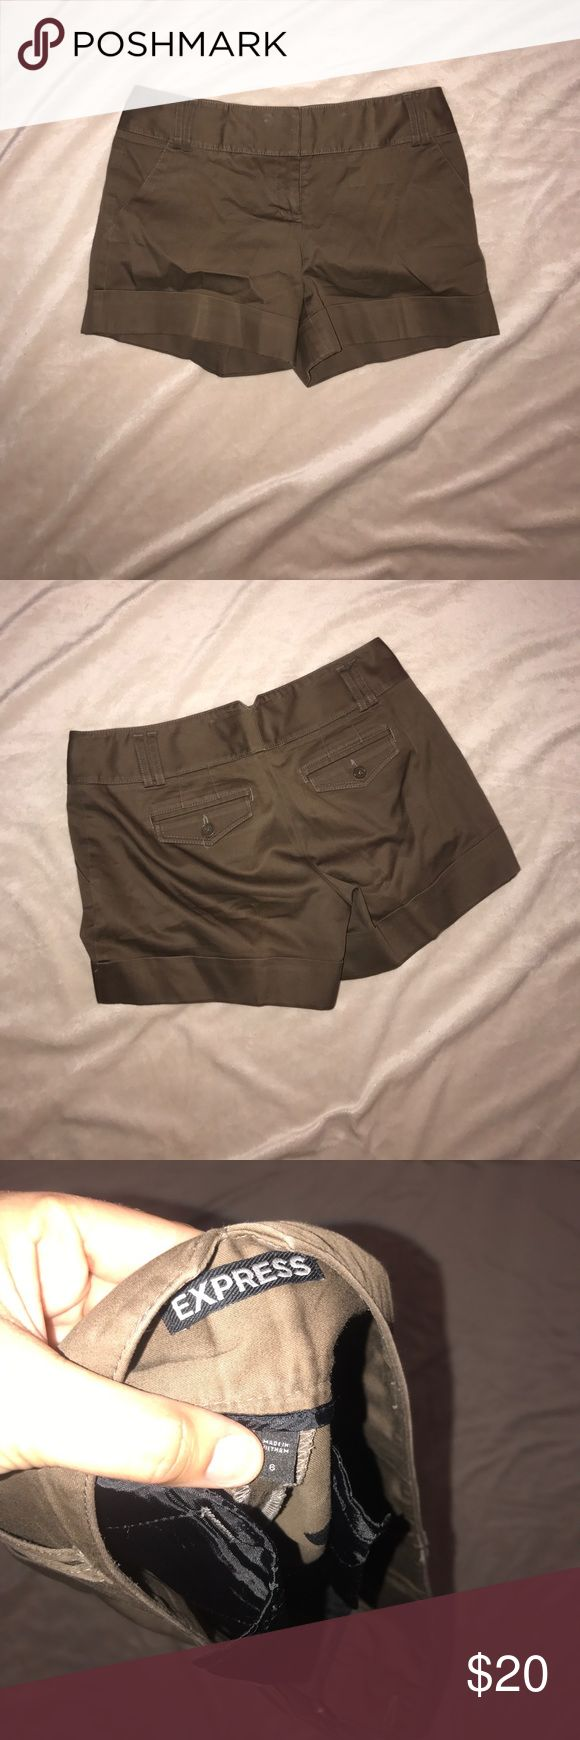 Worn once! Size 6 brown express shorts EUC. Worn once took to dry cleaners and ready to go. Perfect condition. Pet/smoke free home.   OBO Express Shorts